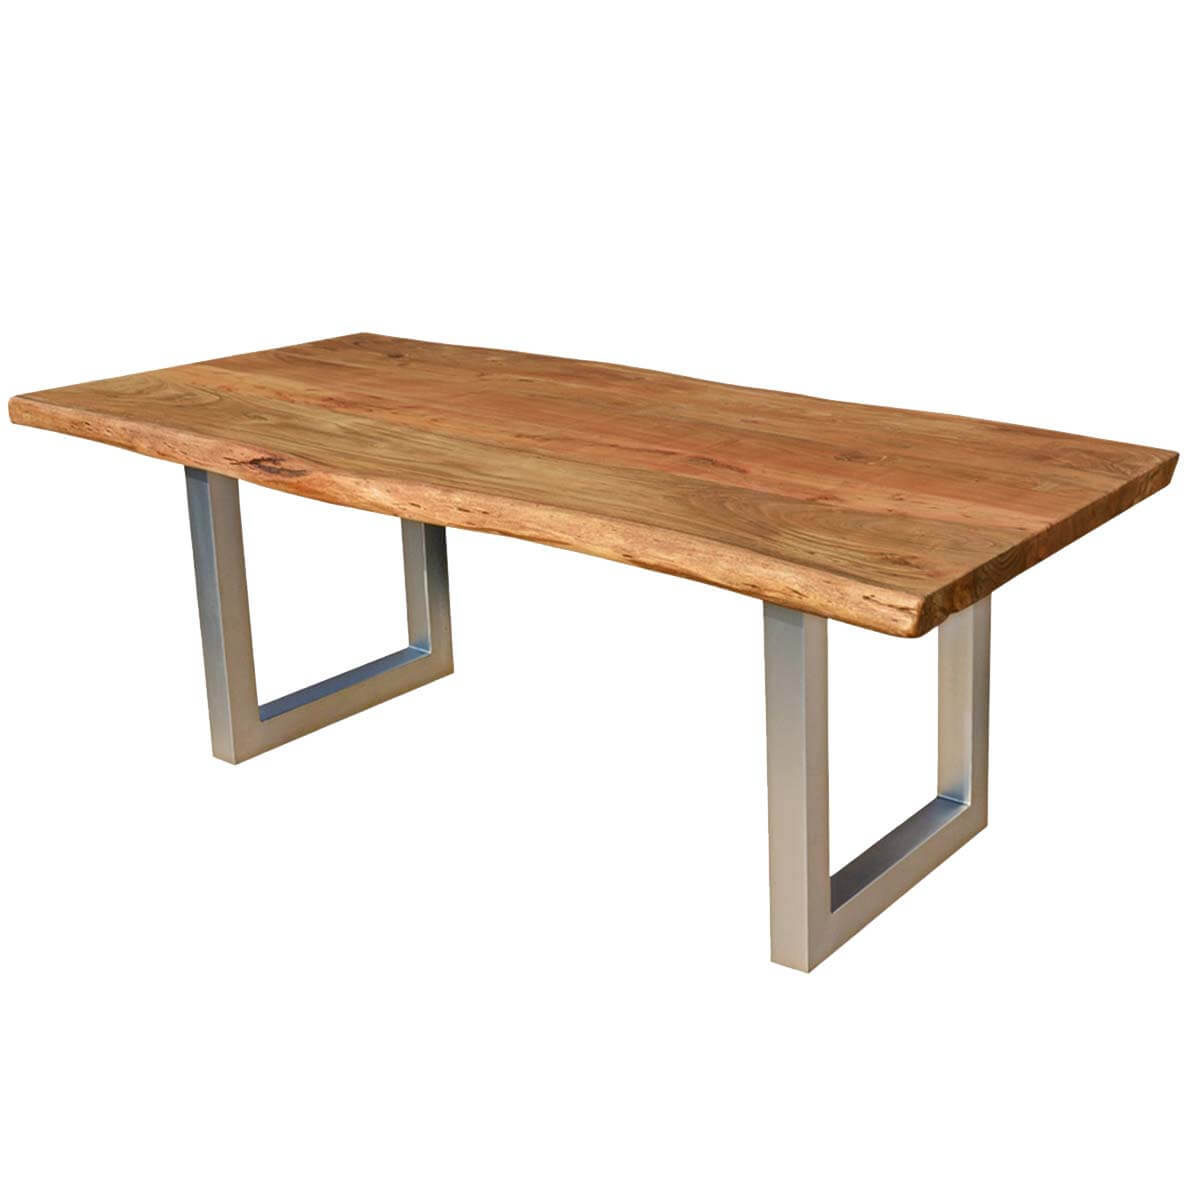 Hankin Wood Iron Base Live Edge Dining Table